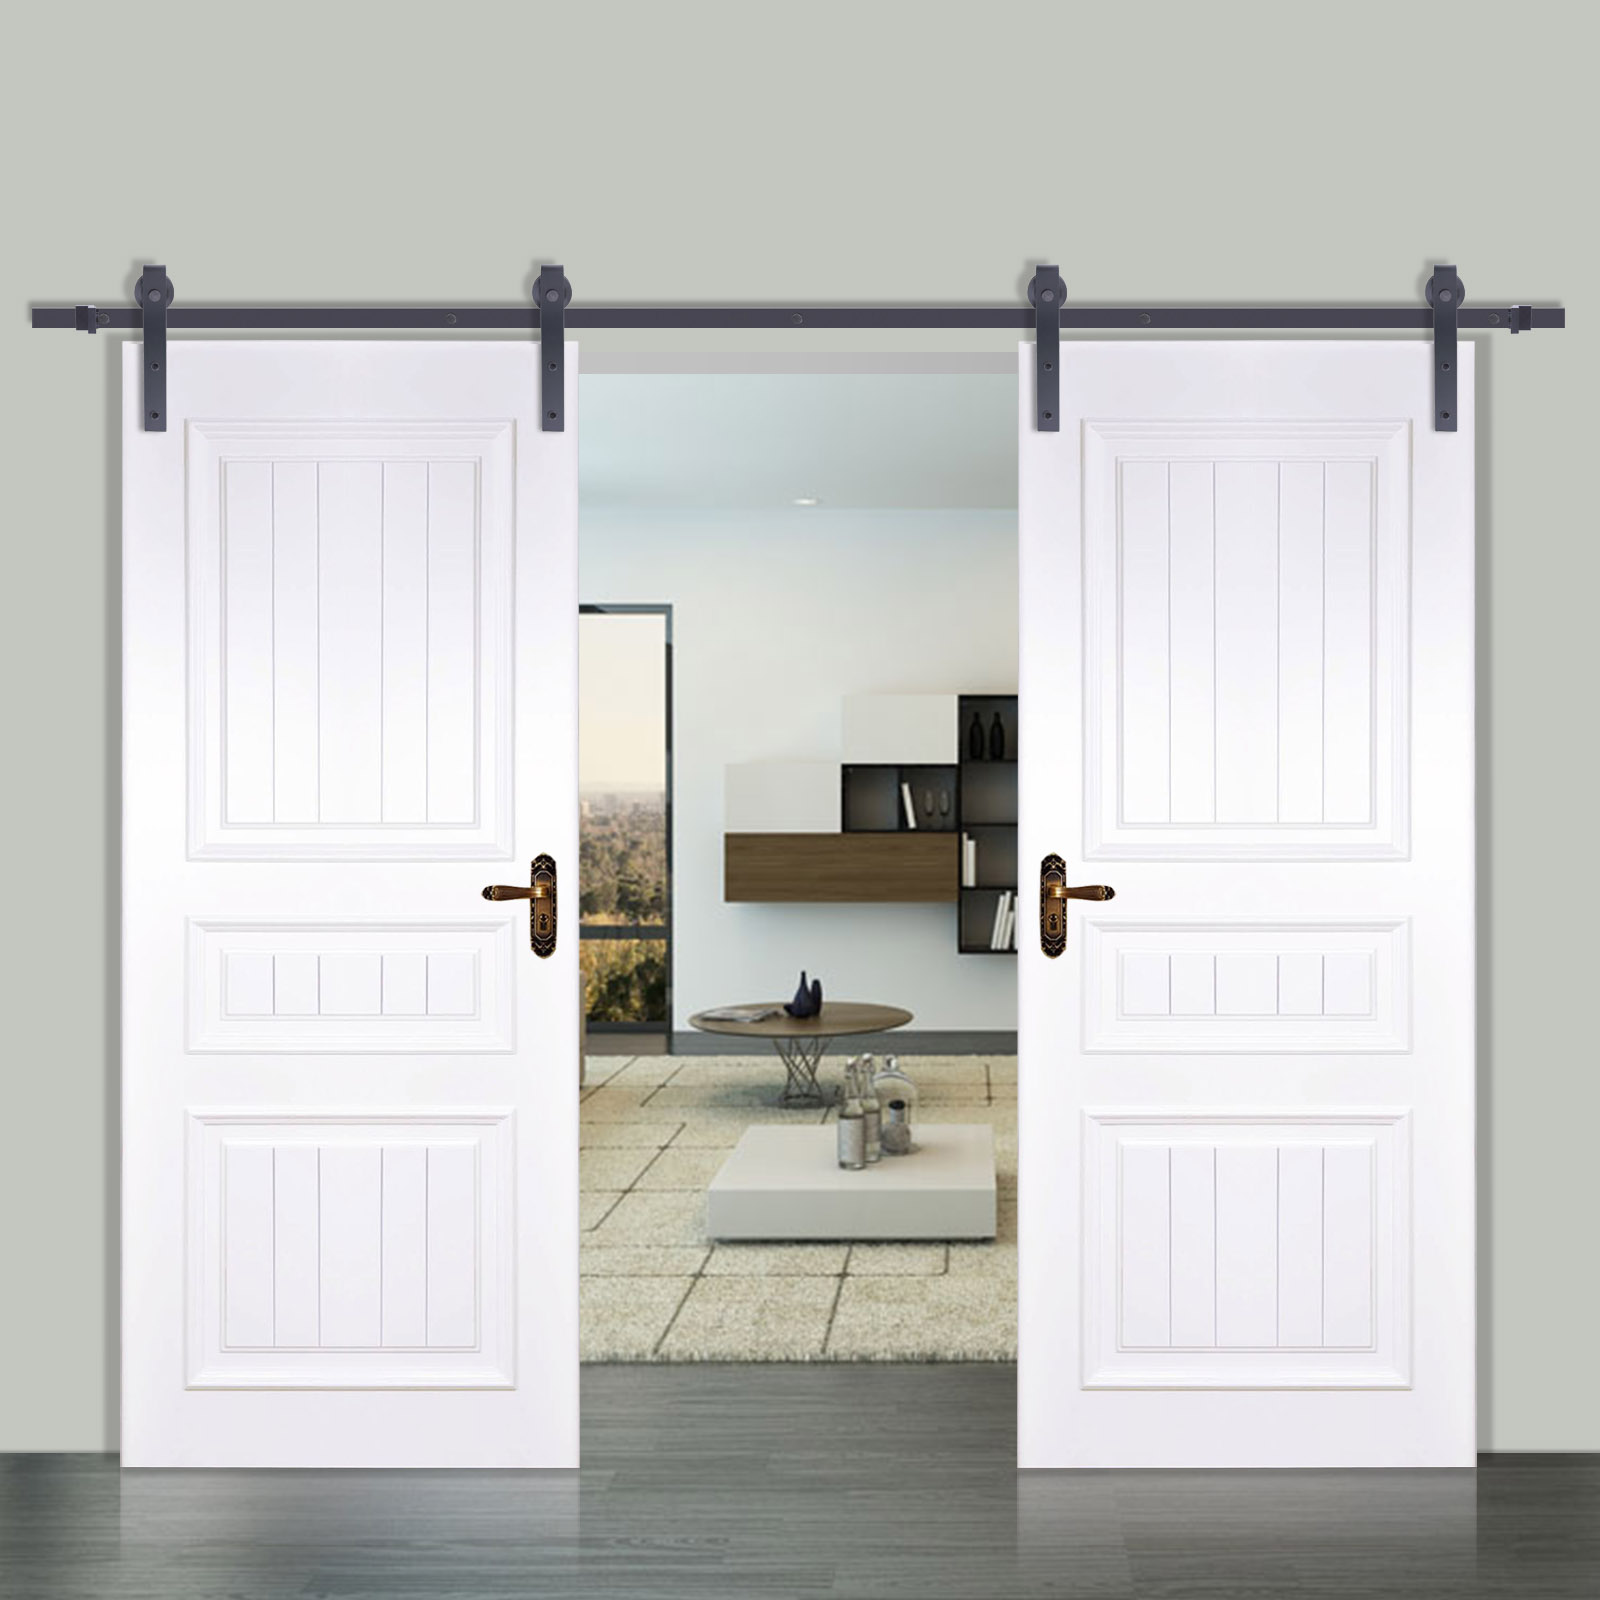 Sliding barn doors for closets ideas design pics examples 7194 sliding barn wood door closet hanger gear kit door track rail hardware img of sliding vtopaller Image collections